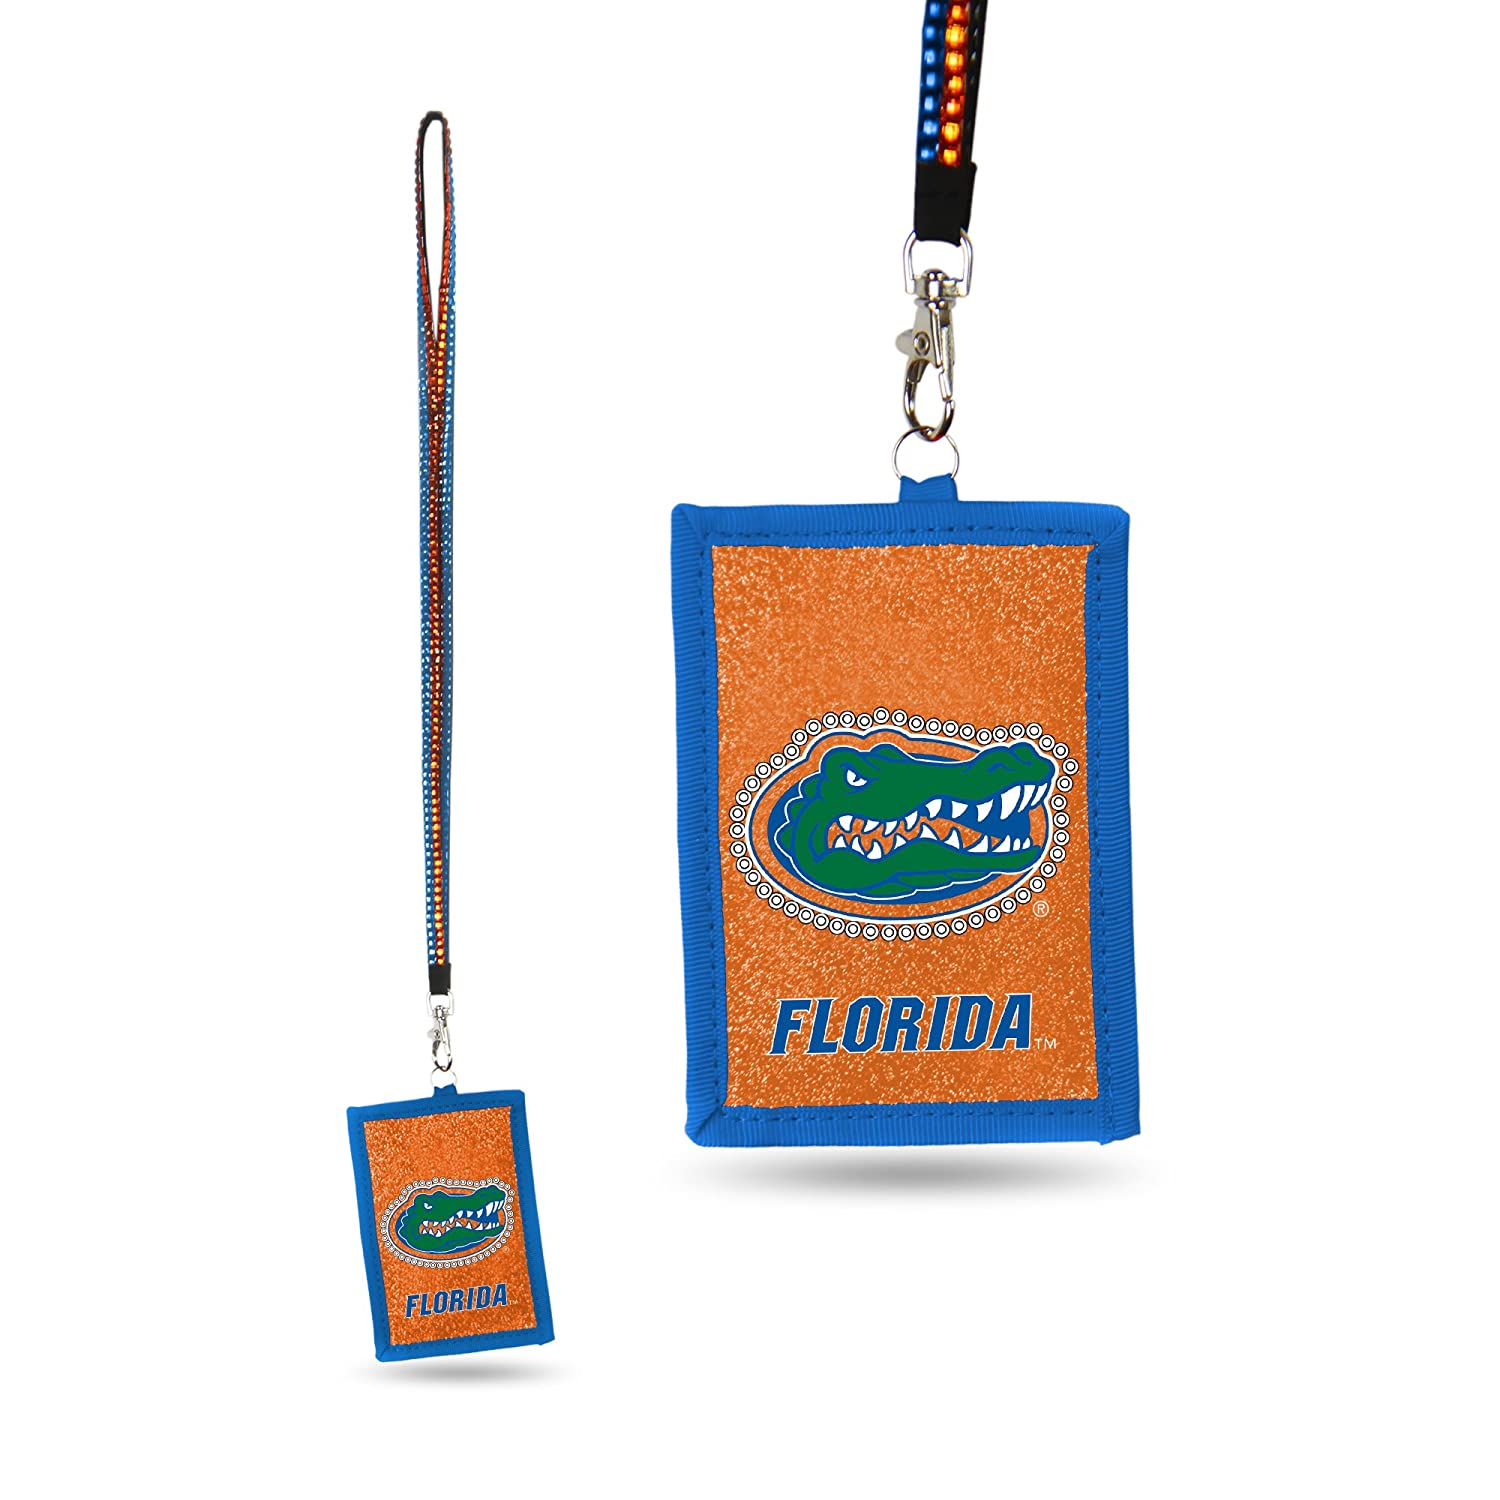 ONLY A Few Left! Luggage Spotter Florida Gators Beaded Lanyard Nylon Zippered Wallet Closeout